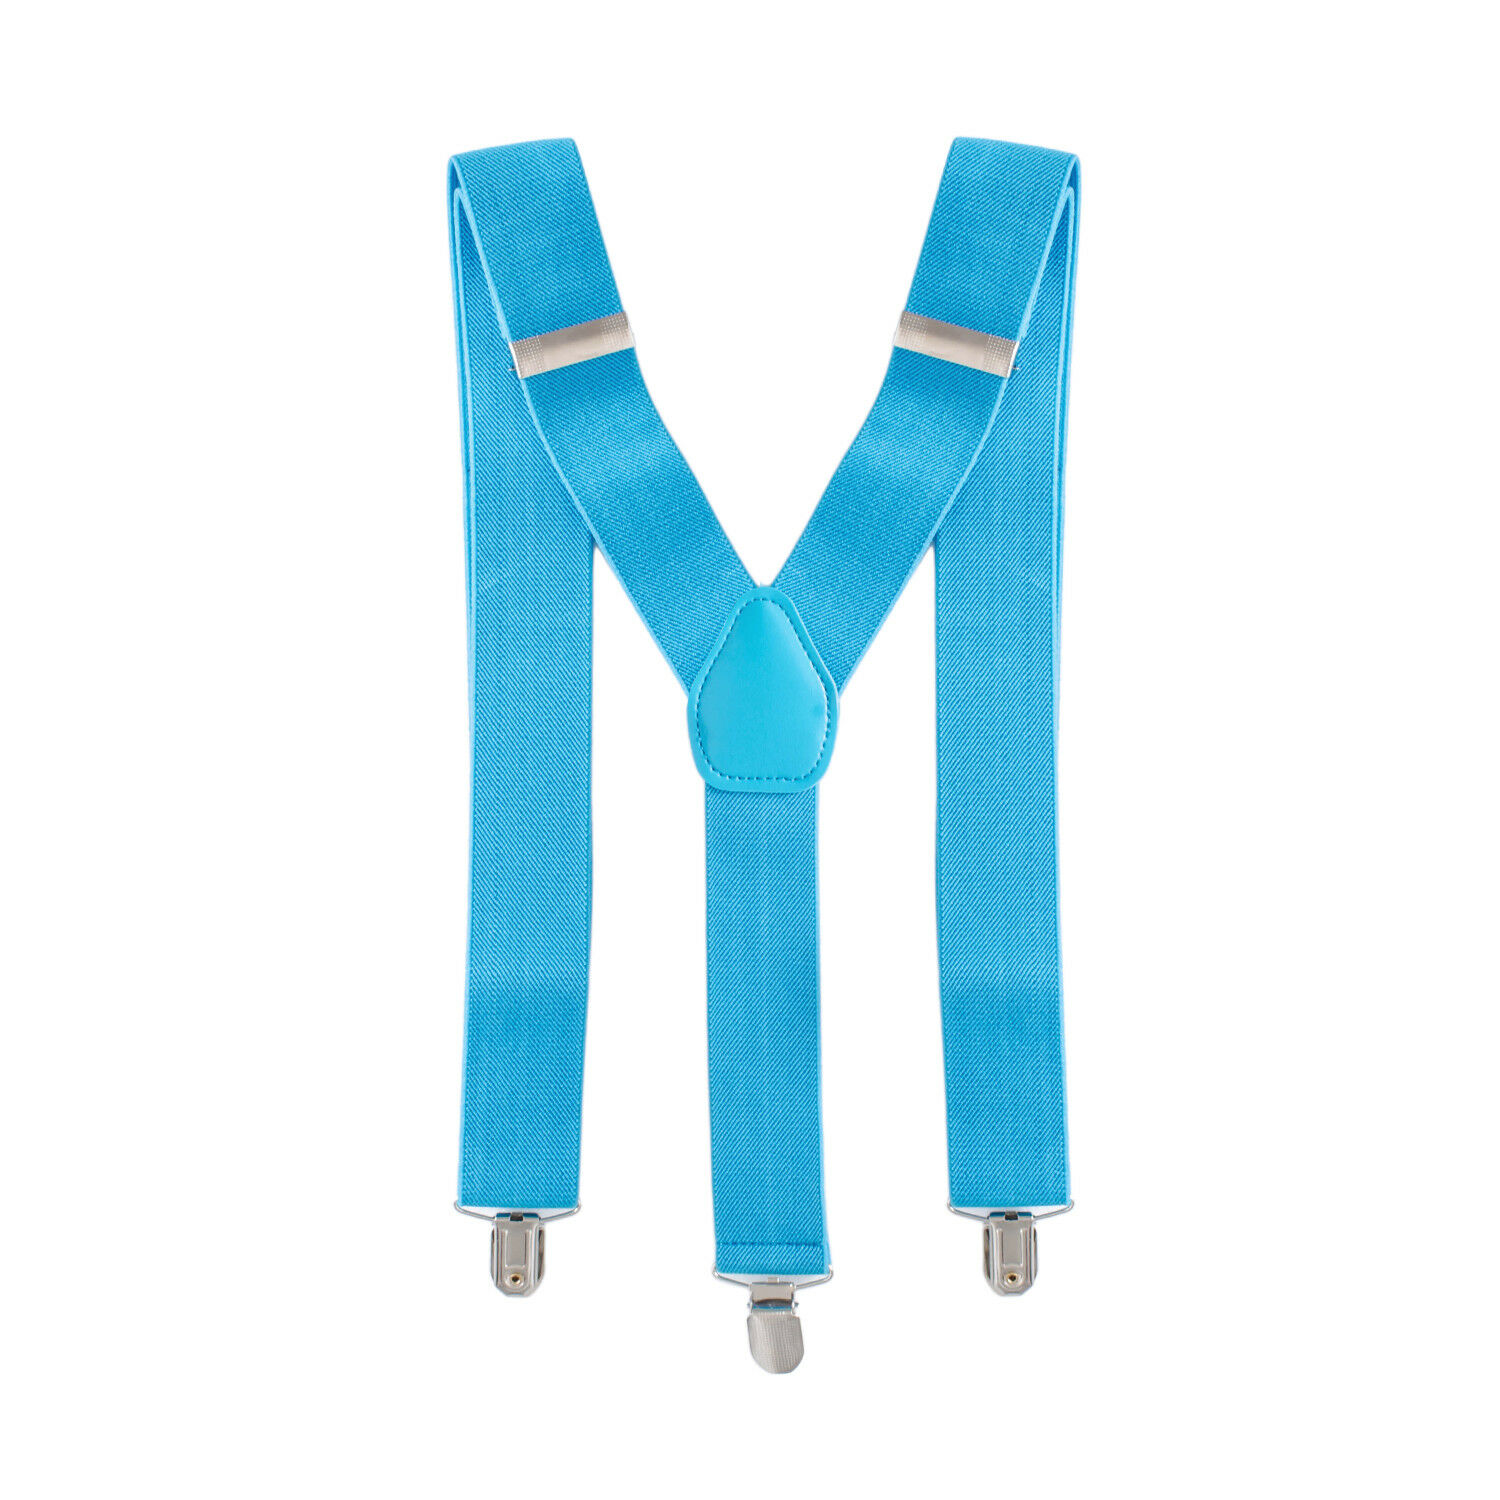 35mm <strong>Mens</strong> Braces <strong>Suspender</strong> Elastic Wide in Brown Clips on Trousers Jeans CG740